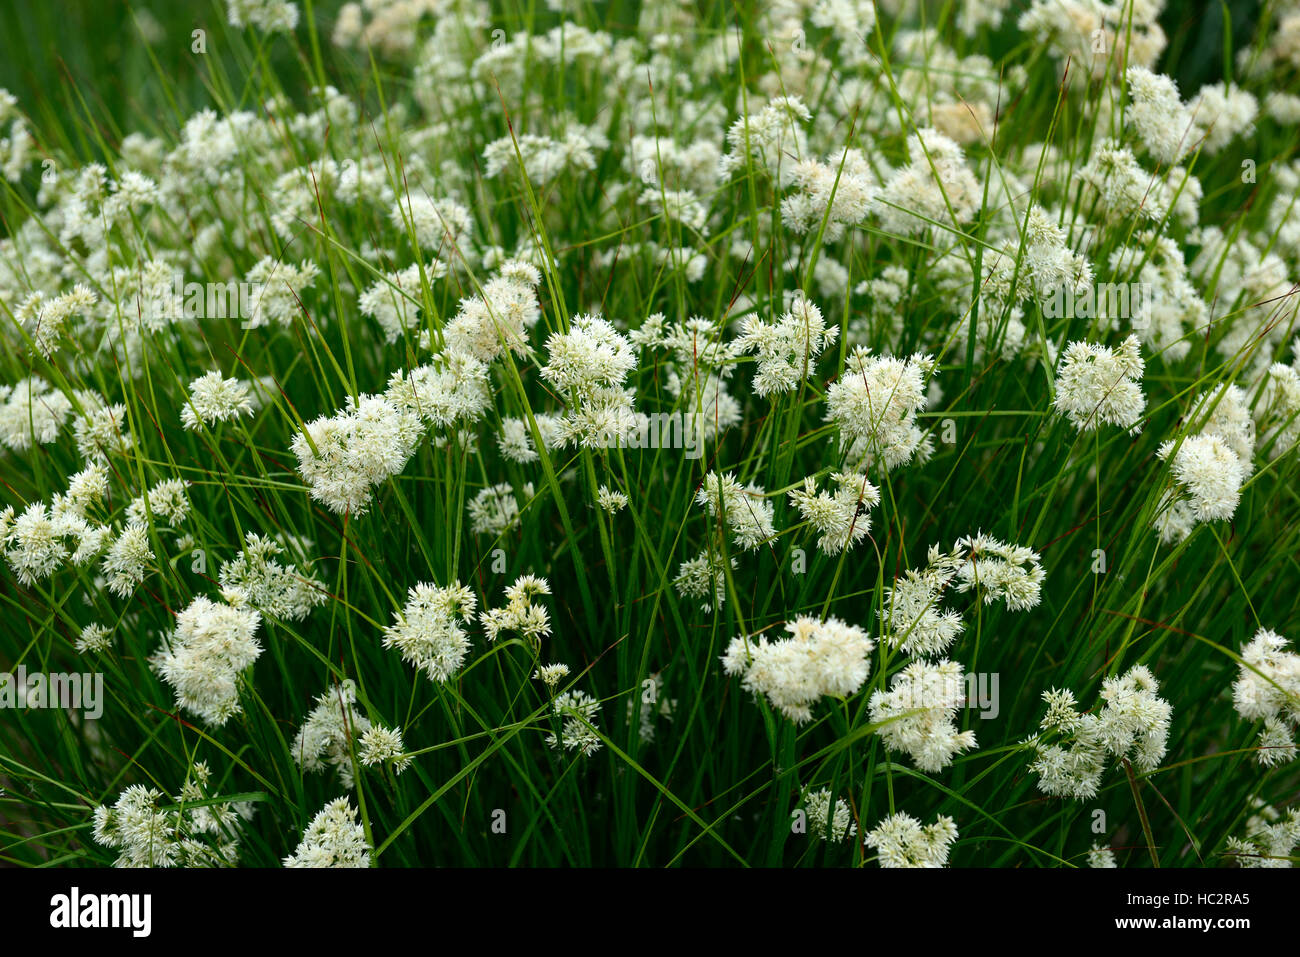 Luzula nivea snowy woodrush white flower flowers flowering showy stock photo luzula nivea snowy woodrush white flower flowers flowering showy plant perennial perennials rm floral dhlflorist Image collections